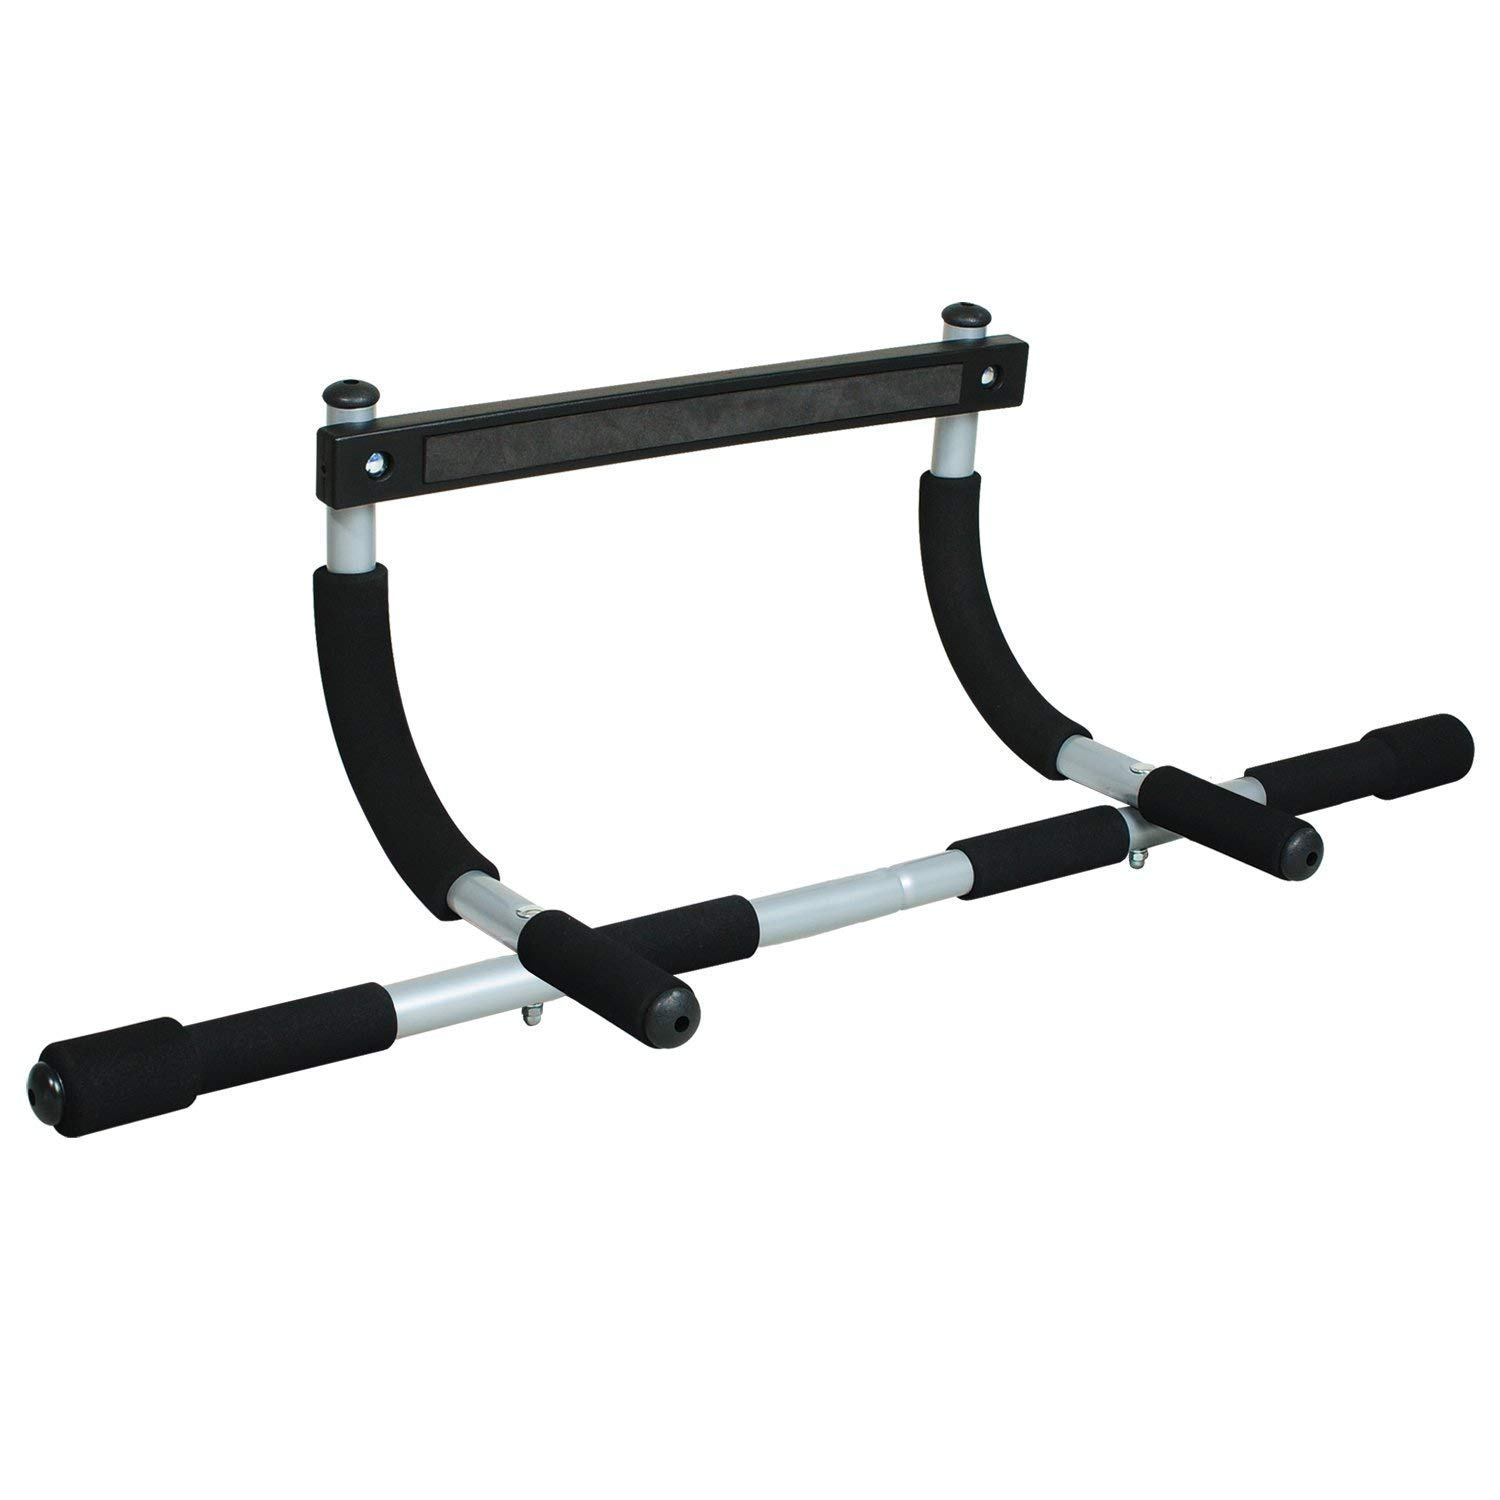 Iron Gym Total Upper Body Workout Bar (4 Units) by Iron Gym (Image #1)